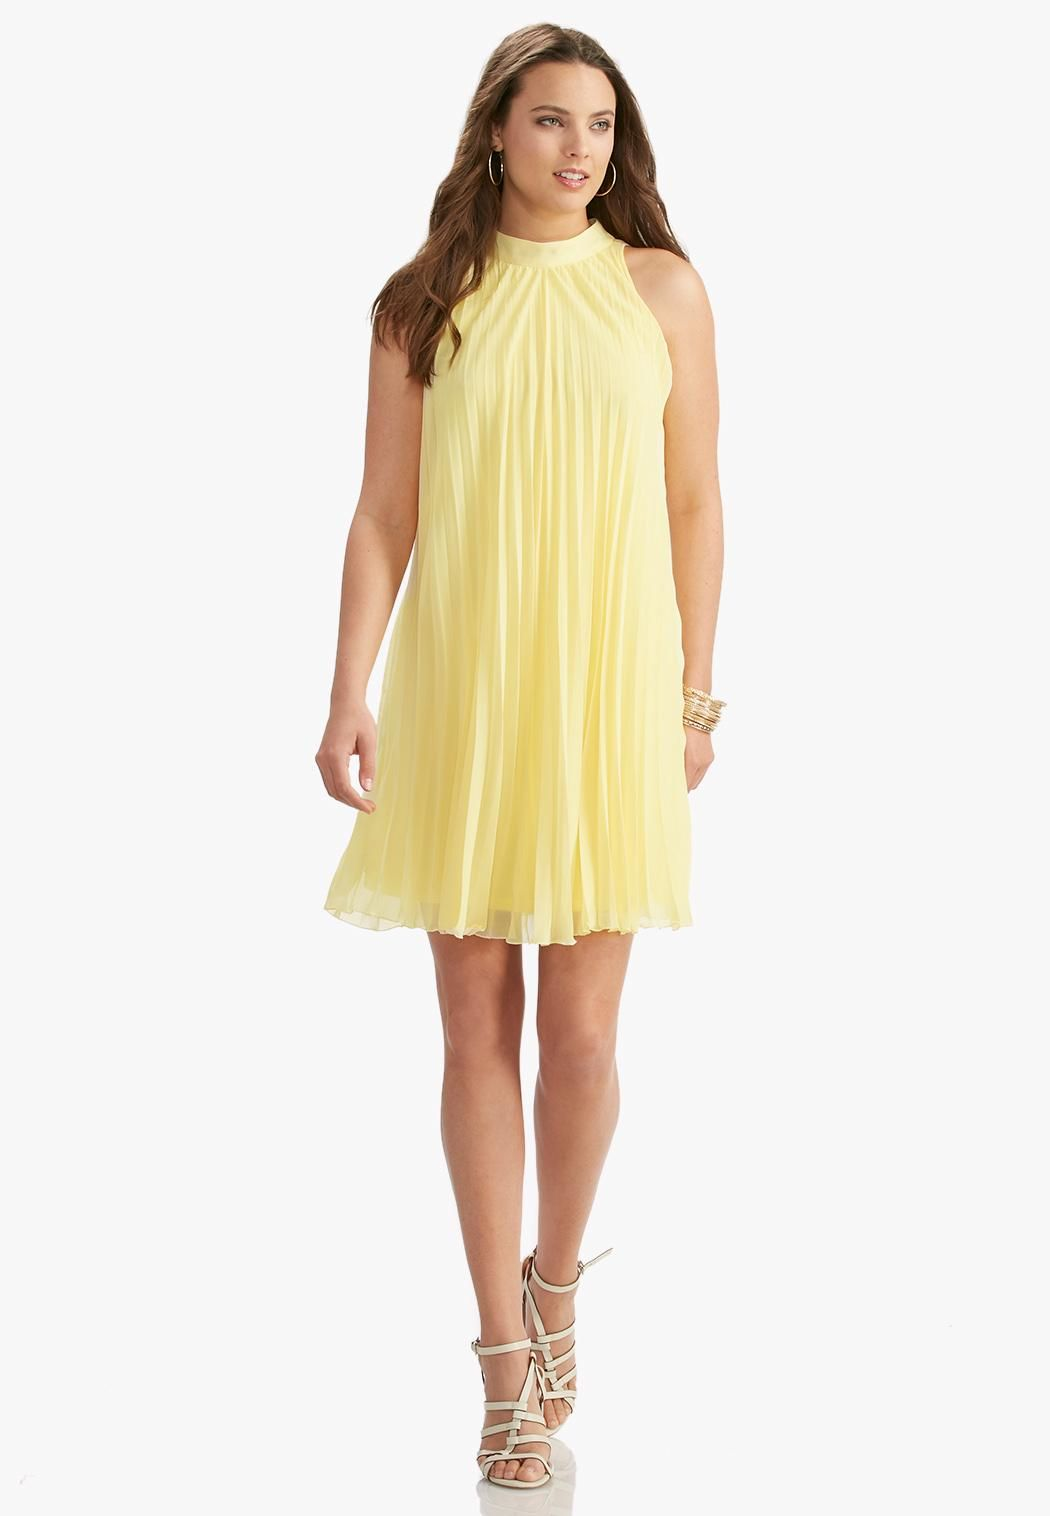 748e55645886c Be runway ready in this glamorous swing dress